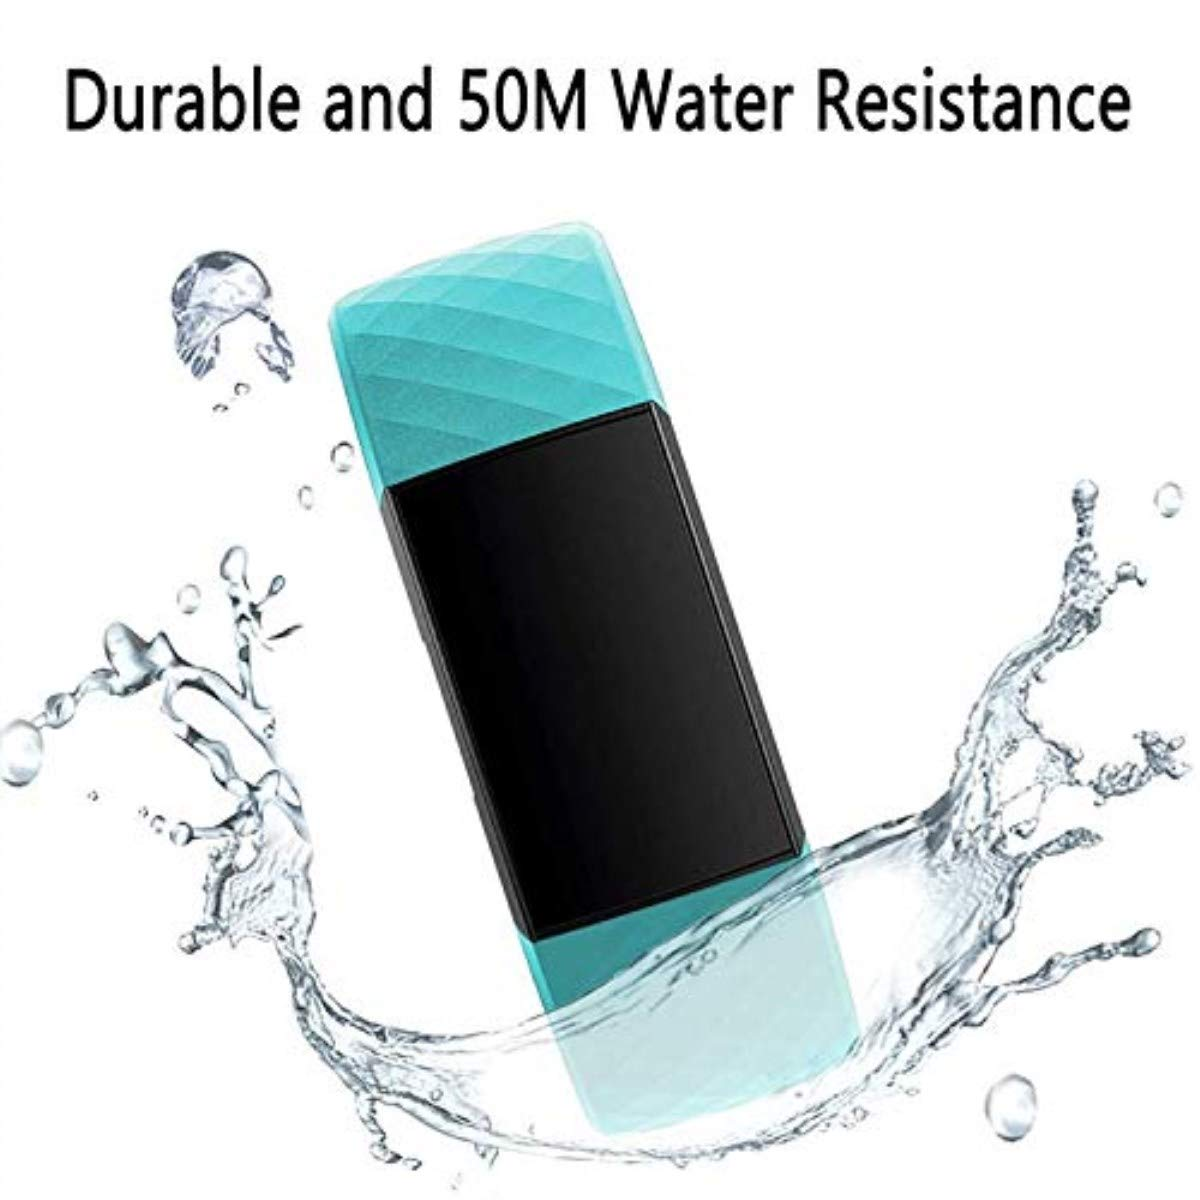 Silicone Waterproof Replacement Sport Strap Fitness Wristband for Women Men Large Small Deyo Replacement Bands Compatible for Fitbit Charge 3//Charge 3 SE Fitness Activity Tracker Teal, Small